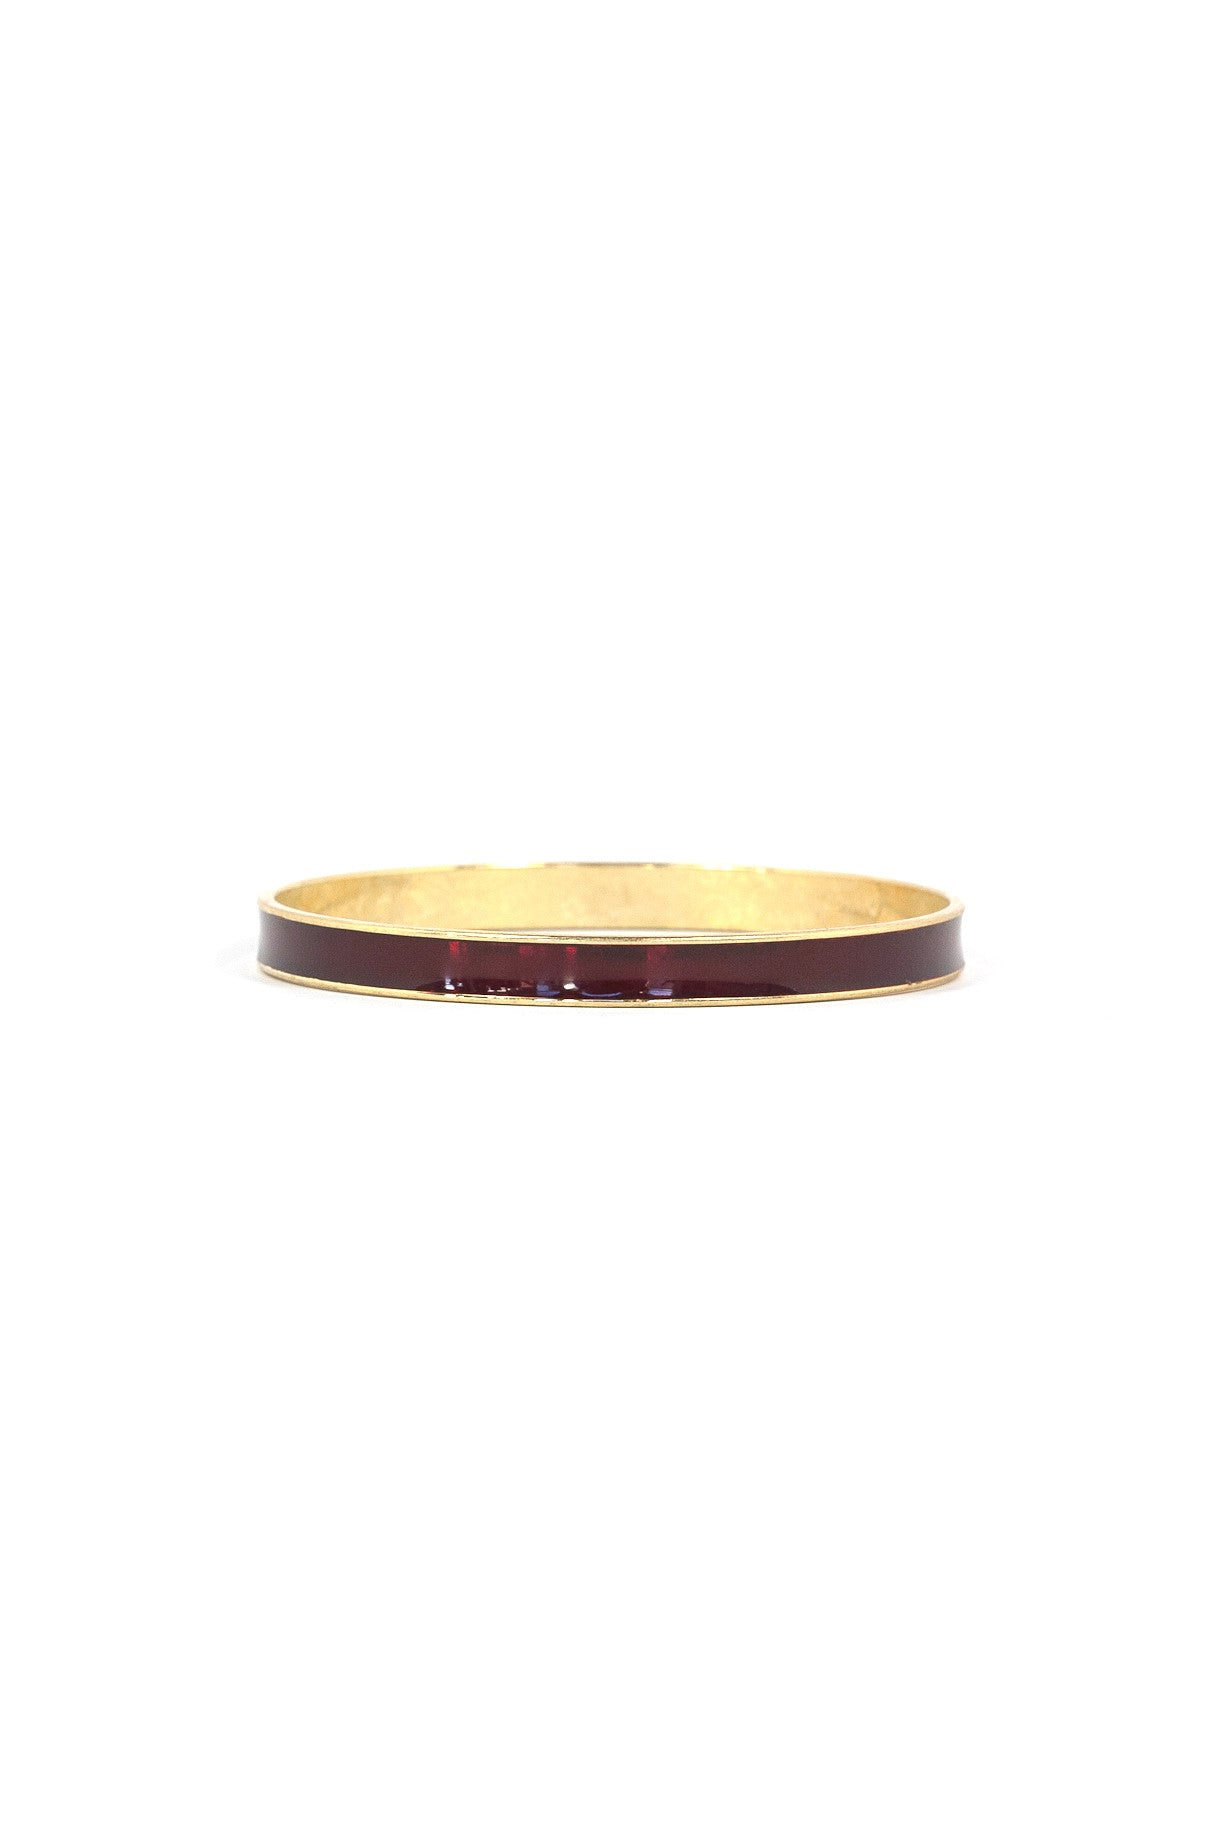 70's__Monet__Deep Red Bangle